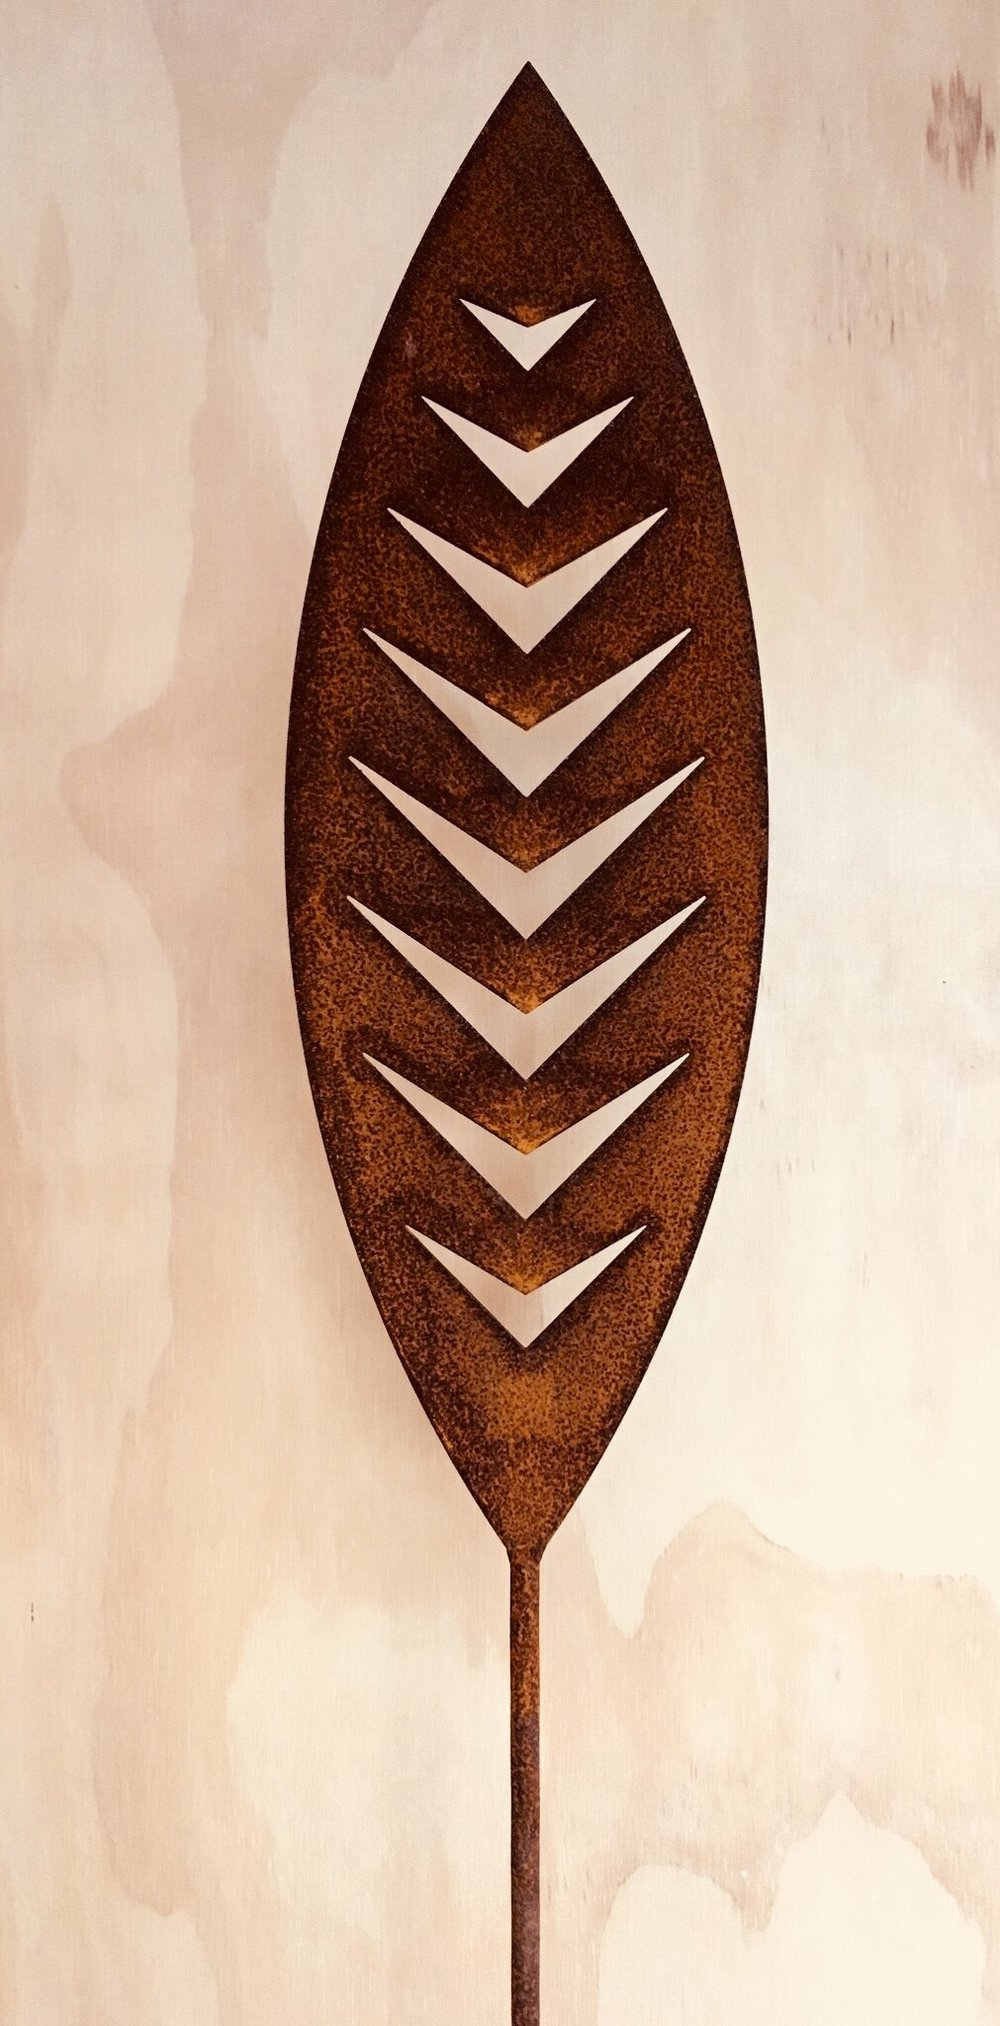 'A Rusty Affair' Corten Arrow  Grounded Art NZ ,  1650mm tall (400mm spear head on a 1250mm rod)  $95.00